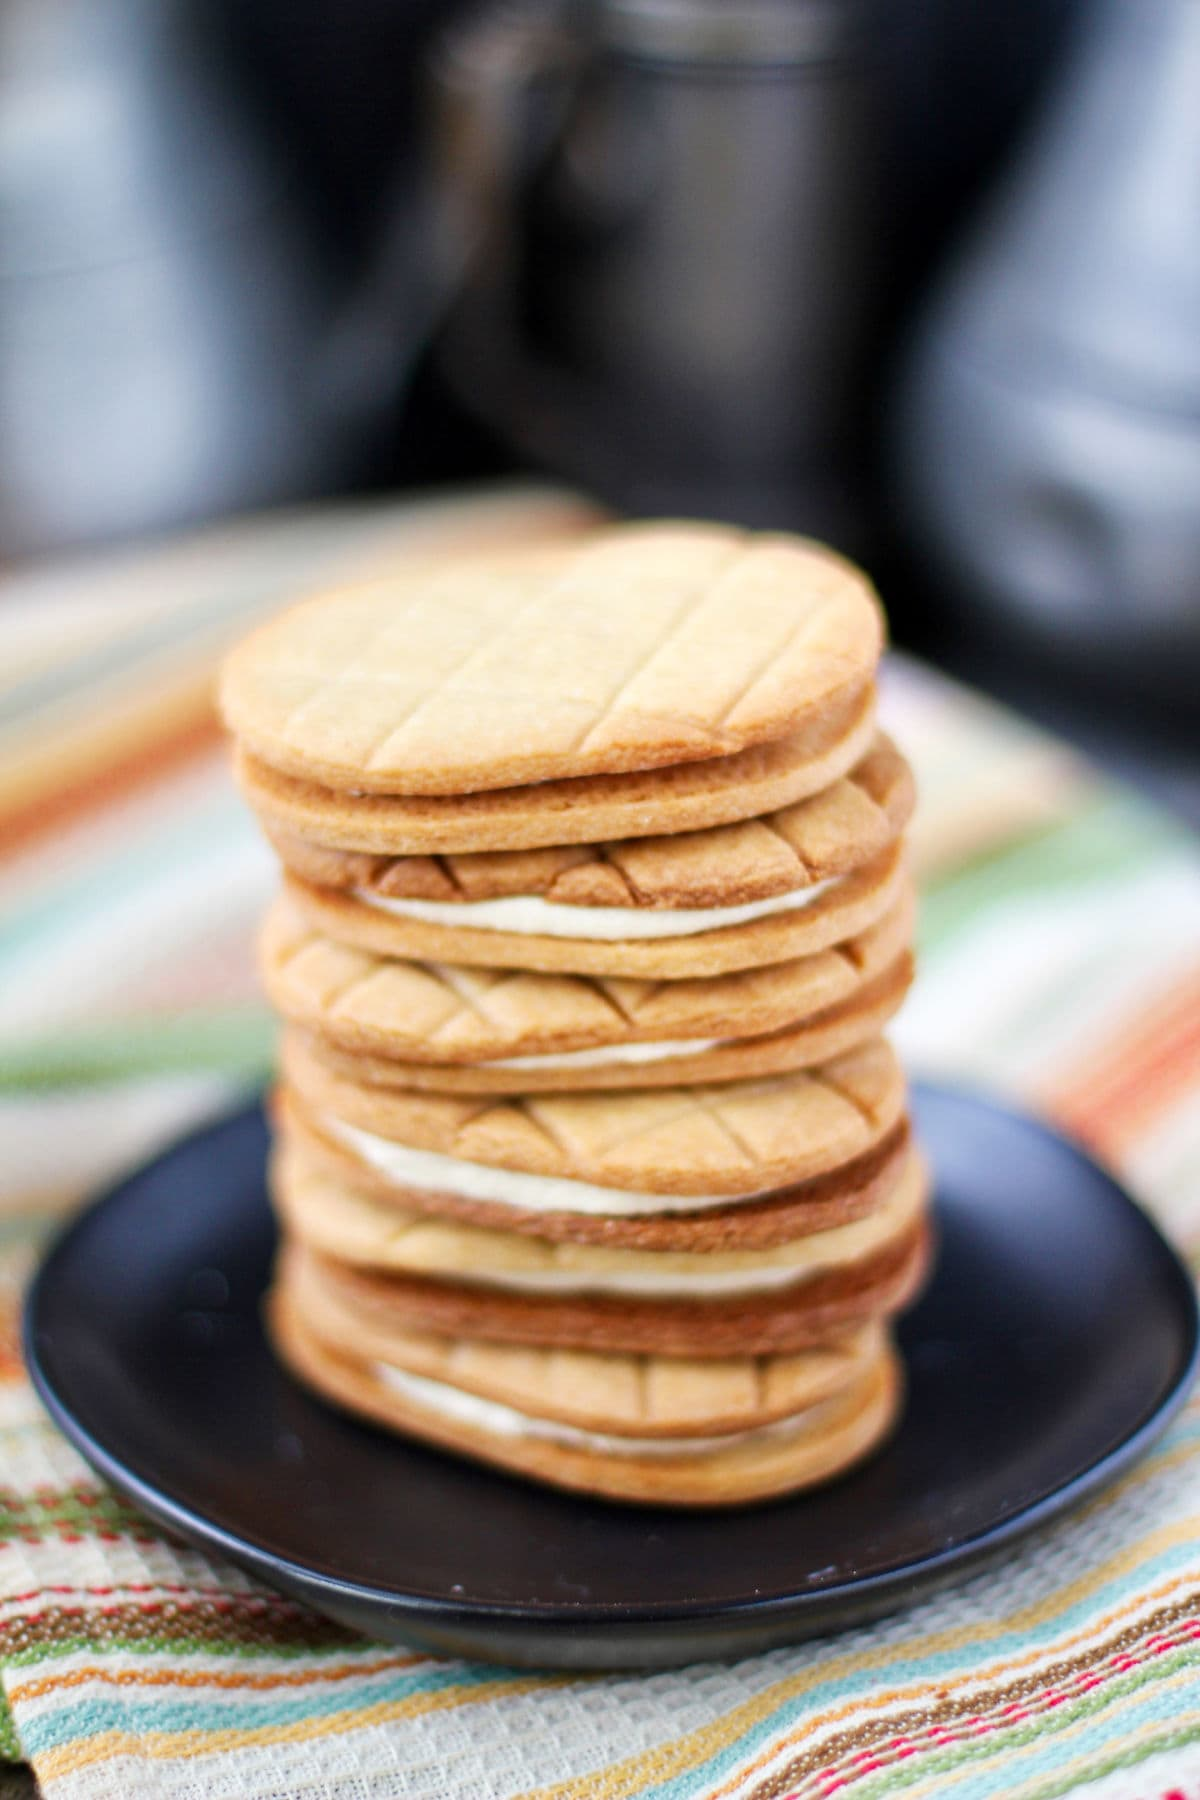 Homemade Nutter Butter cookies stacked.